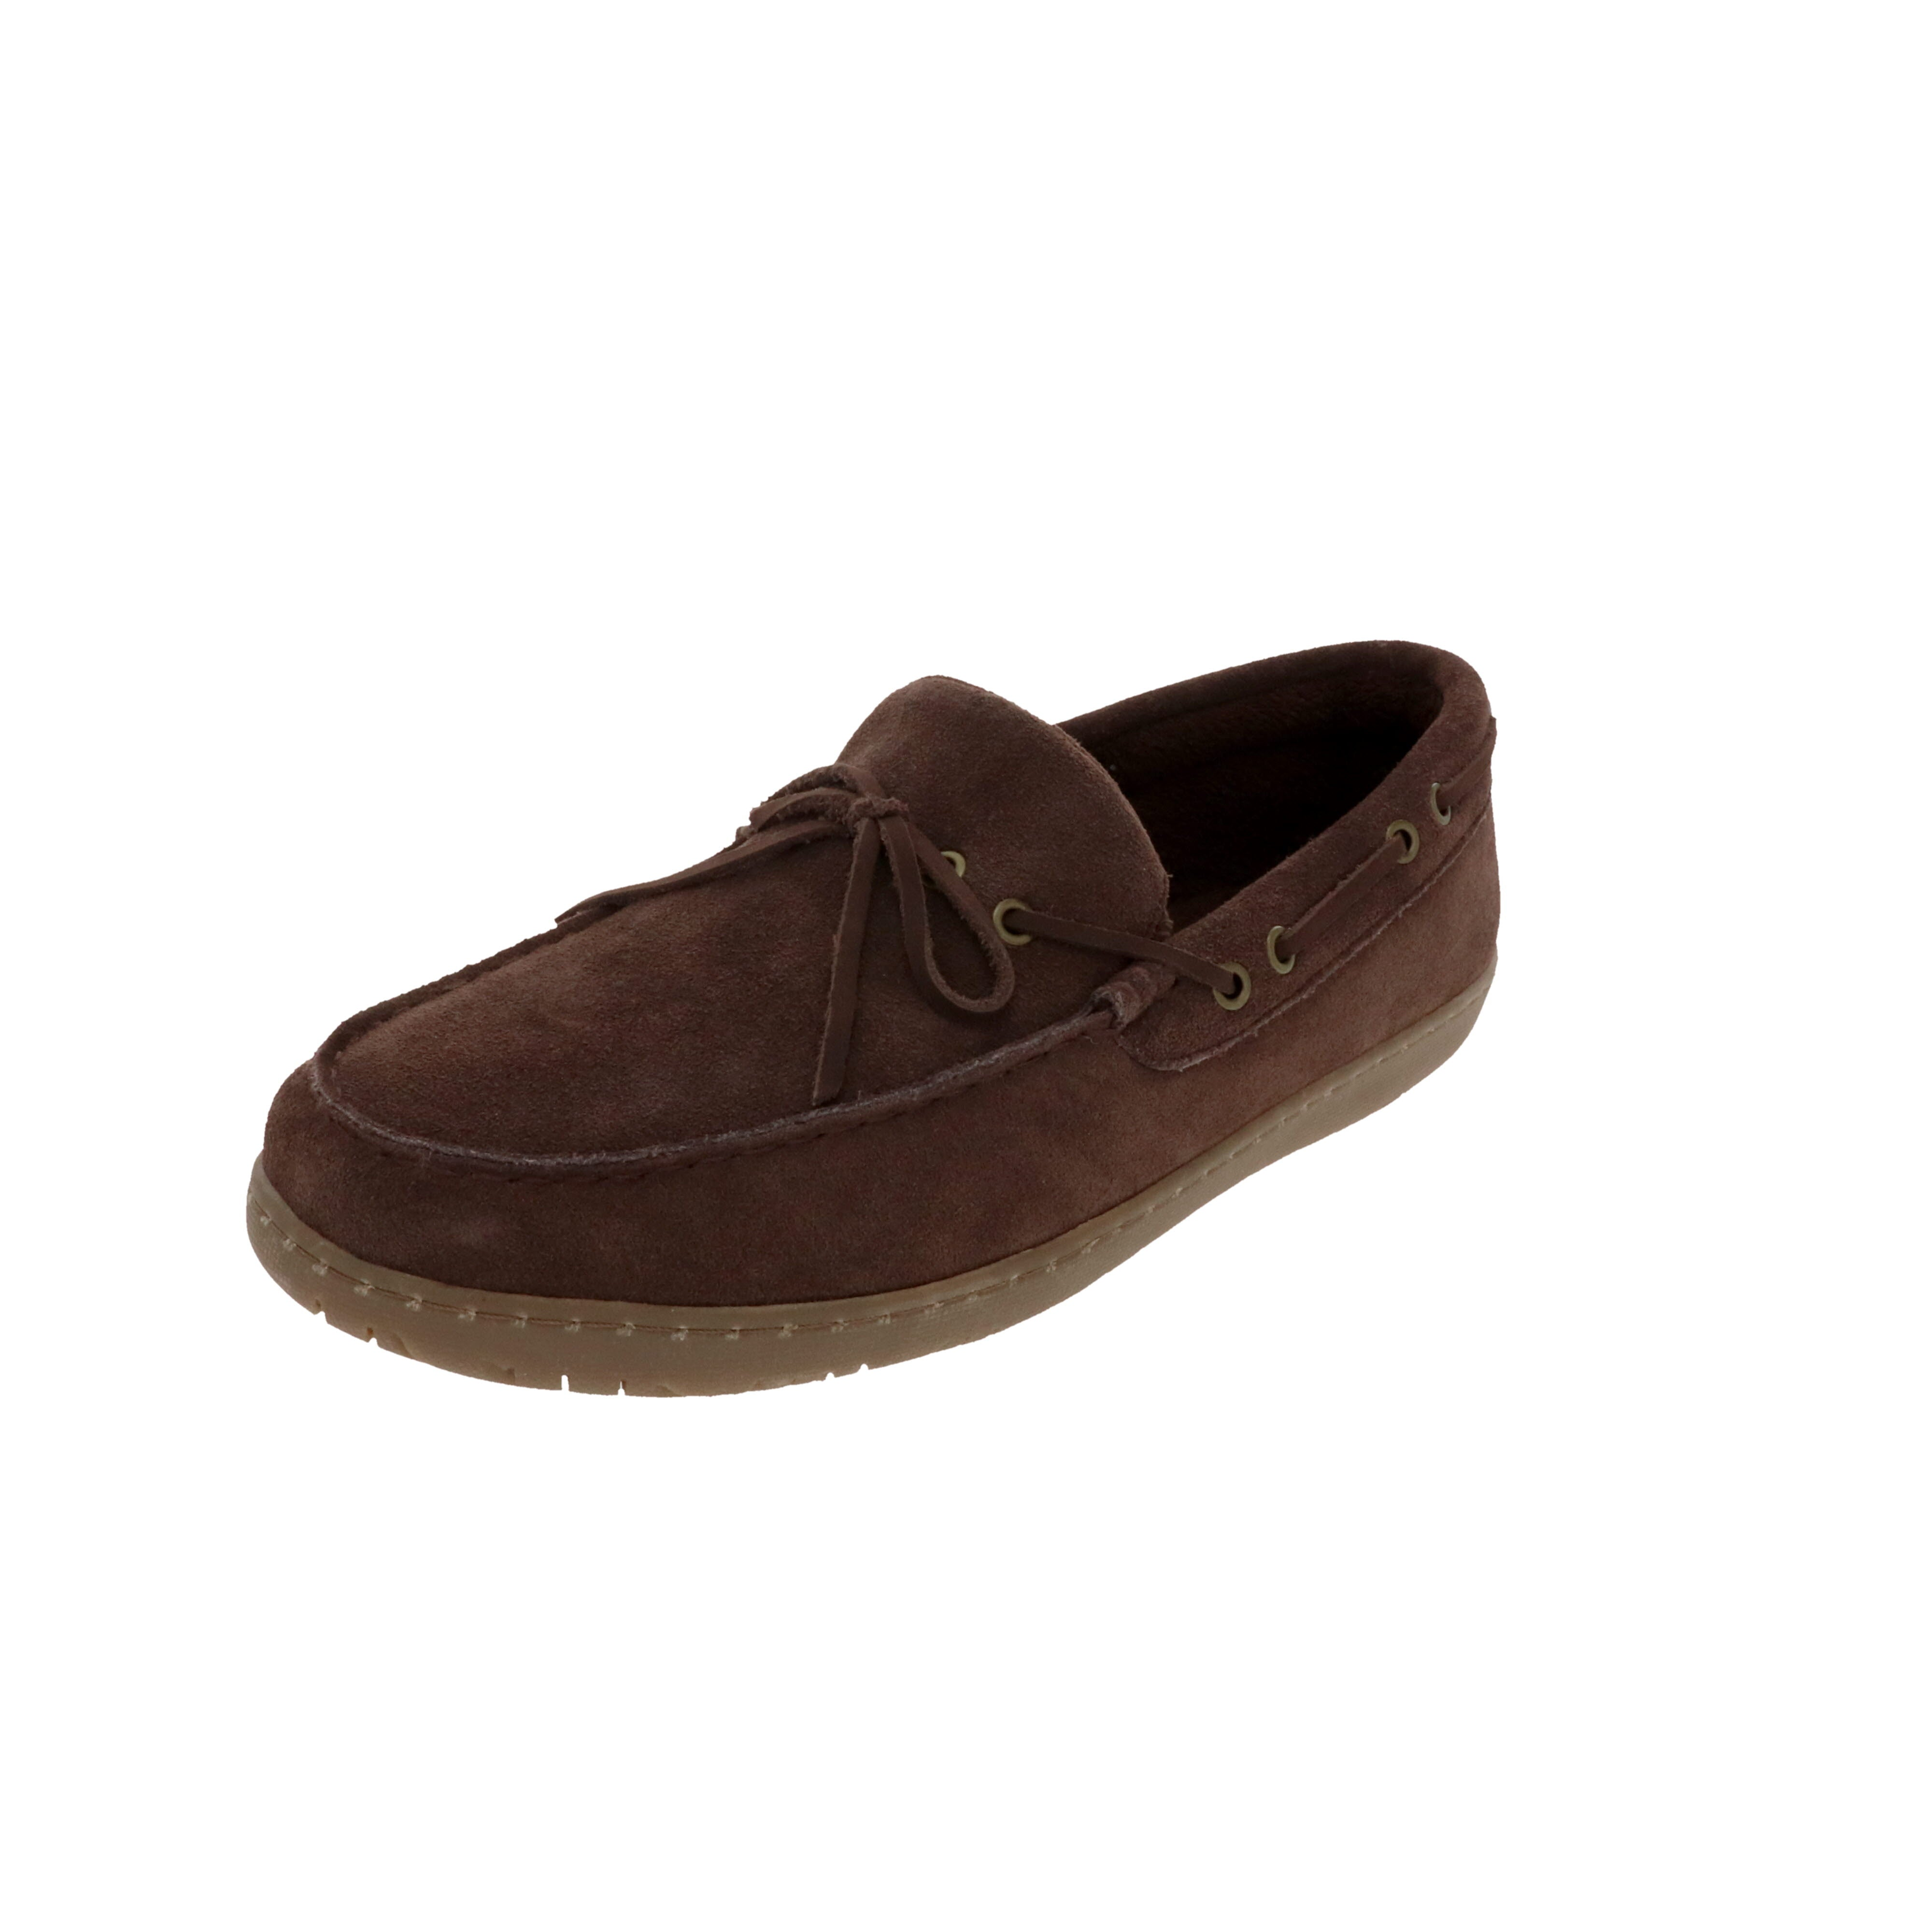 Noah Chocolate-Closed Back-Foamtreads-Chocolate-7-Foamtreads Slipper Men Men's Slippers Genuine Suede Soft Terry lining leather laces light weight lightweight memory foam insole medium cottage comfort relax